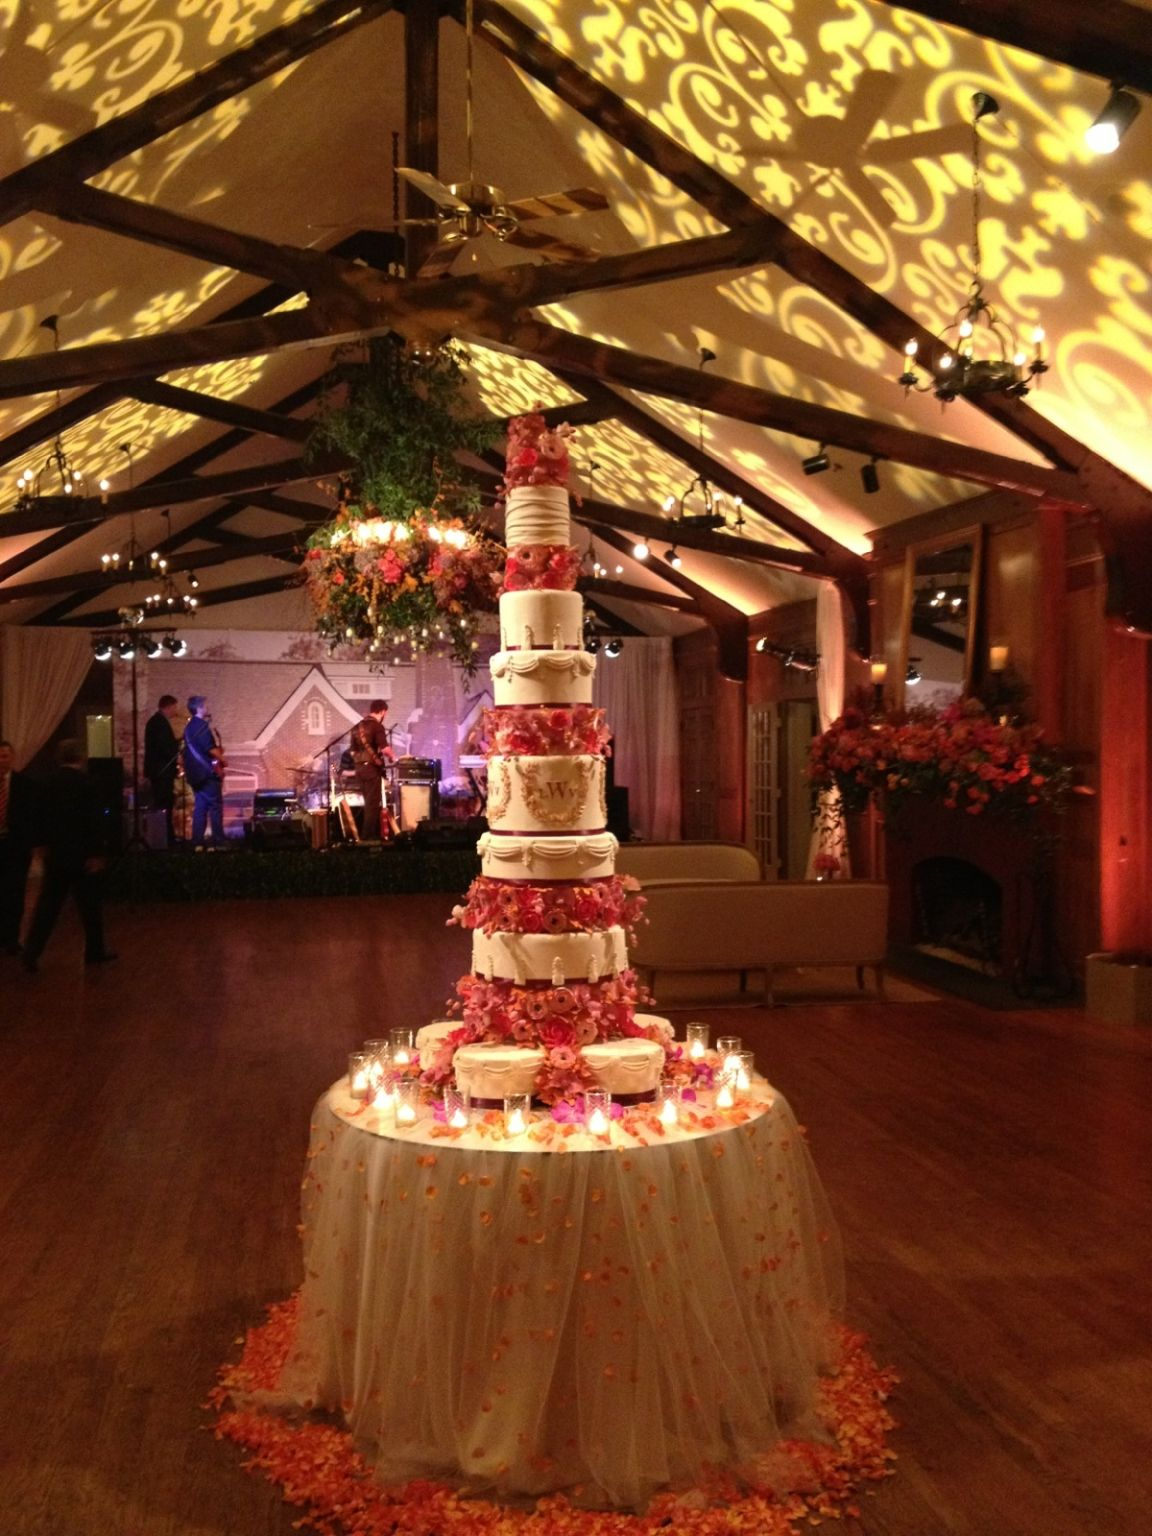 Amazing 6 foot tall wedding cake by gias cakes tall